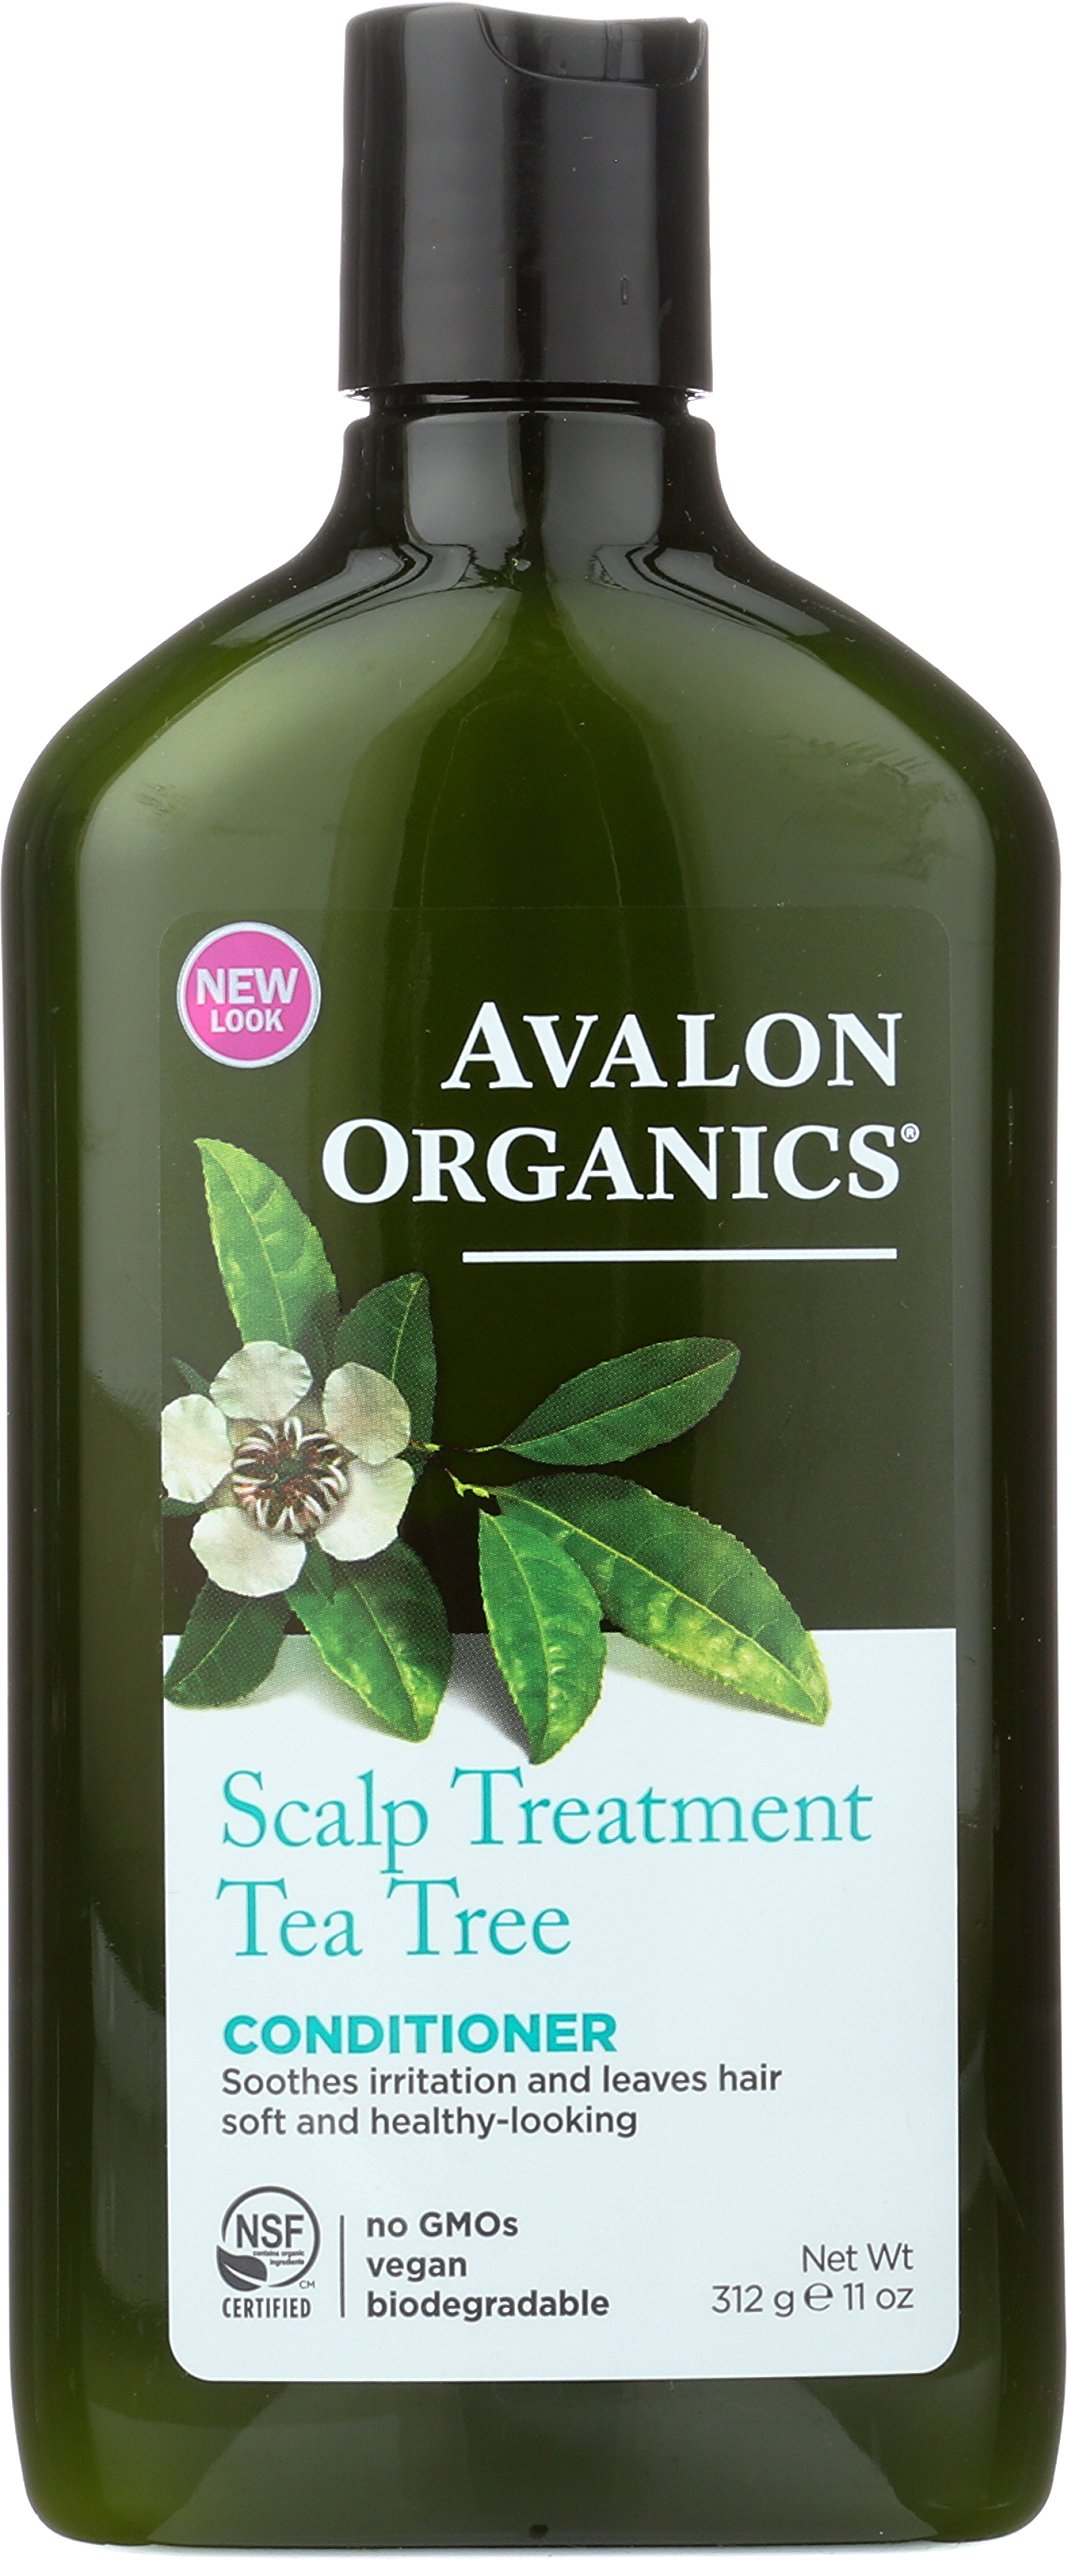 Avalon Organics Scalp Treatment Tea Tree Conditioner, 11 oz